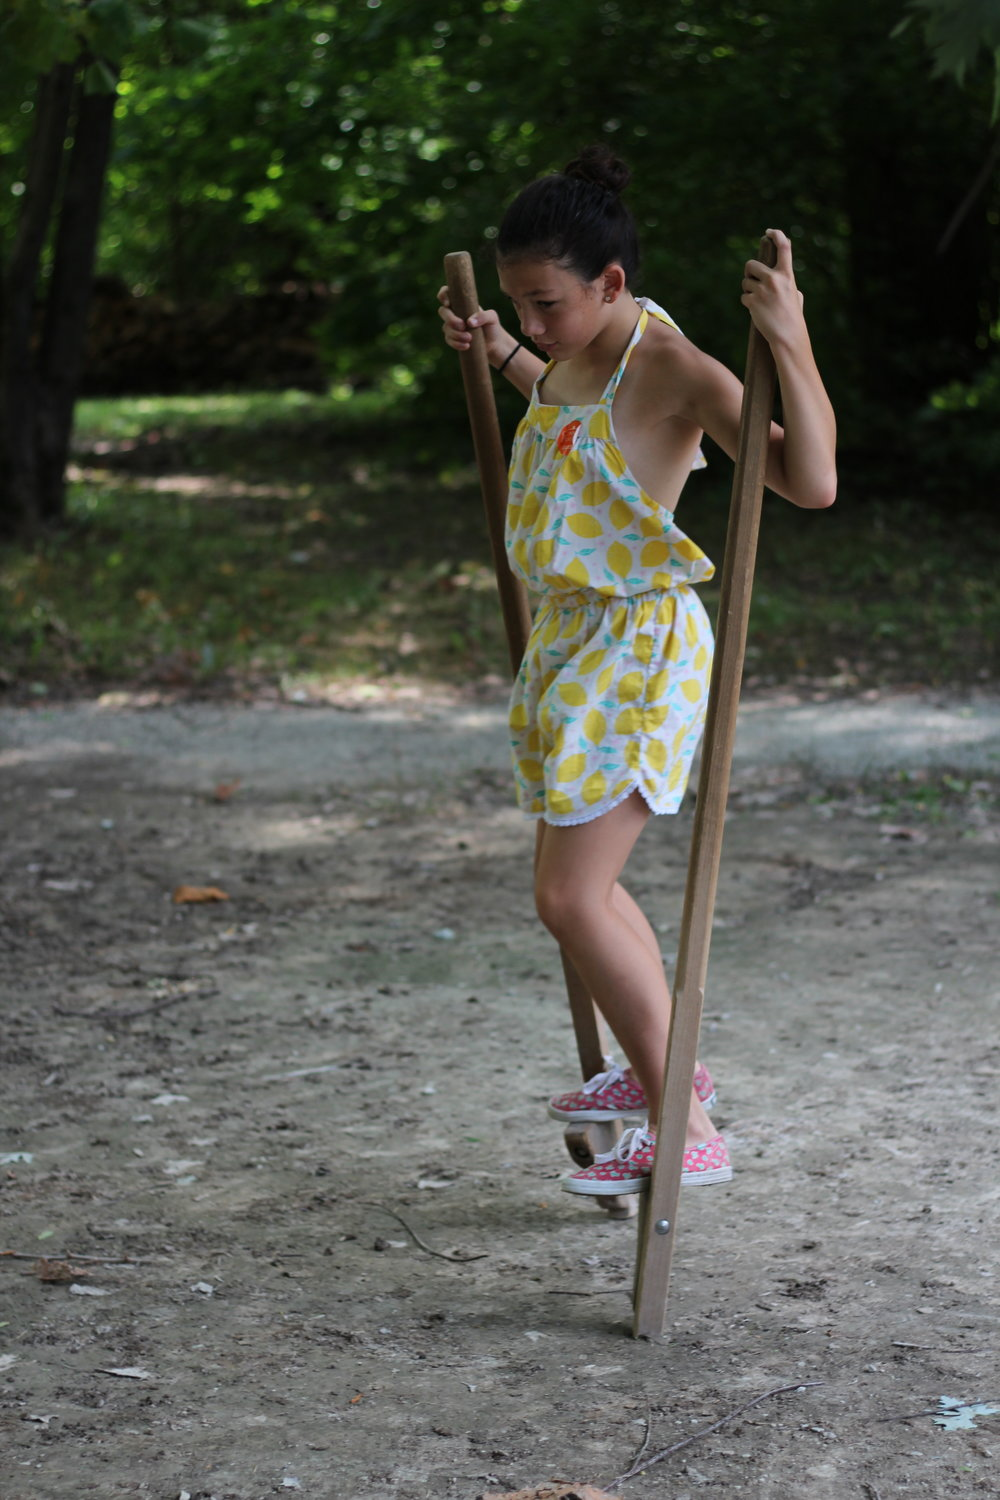 Stilts on stilts, well maybe she's not that tall, enjoying one of the many fun games and activities at Conner Prairie, Fishers Indiana